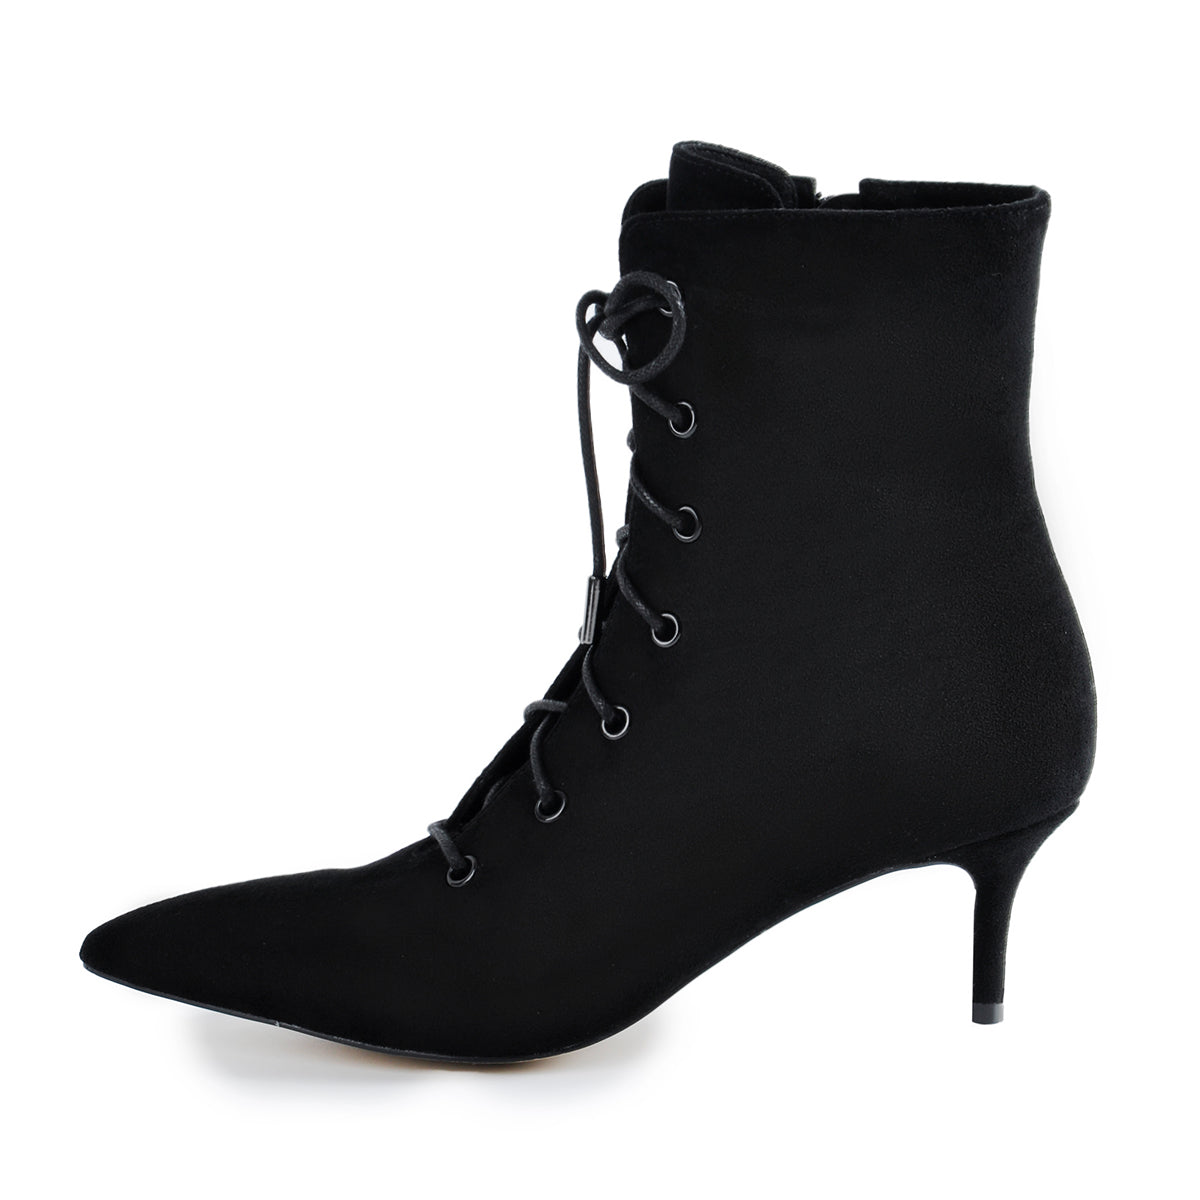 Kitten Low Heel Pointed Toe Lace Up